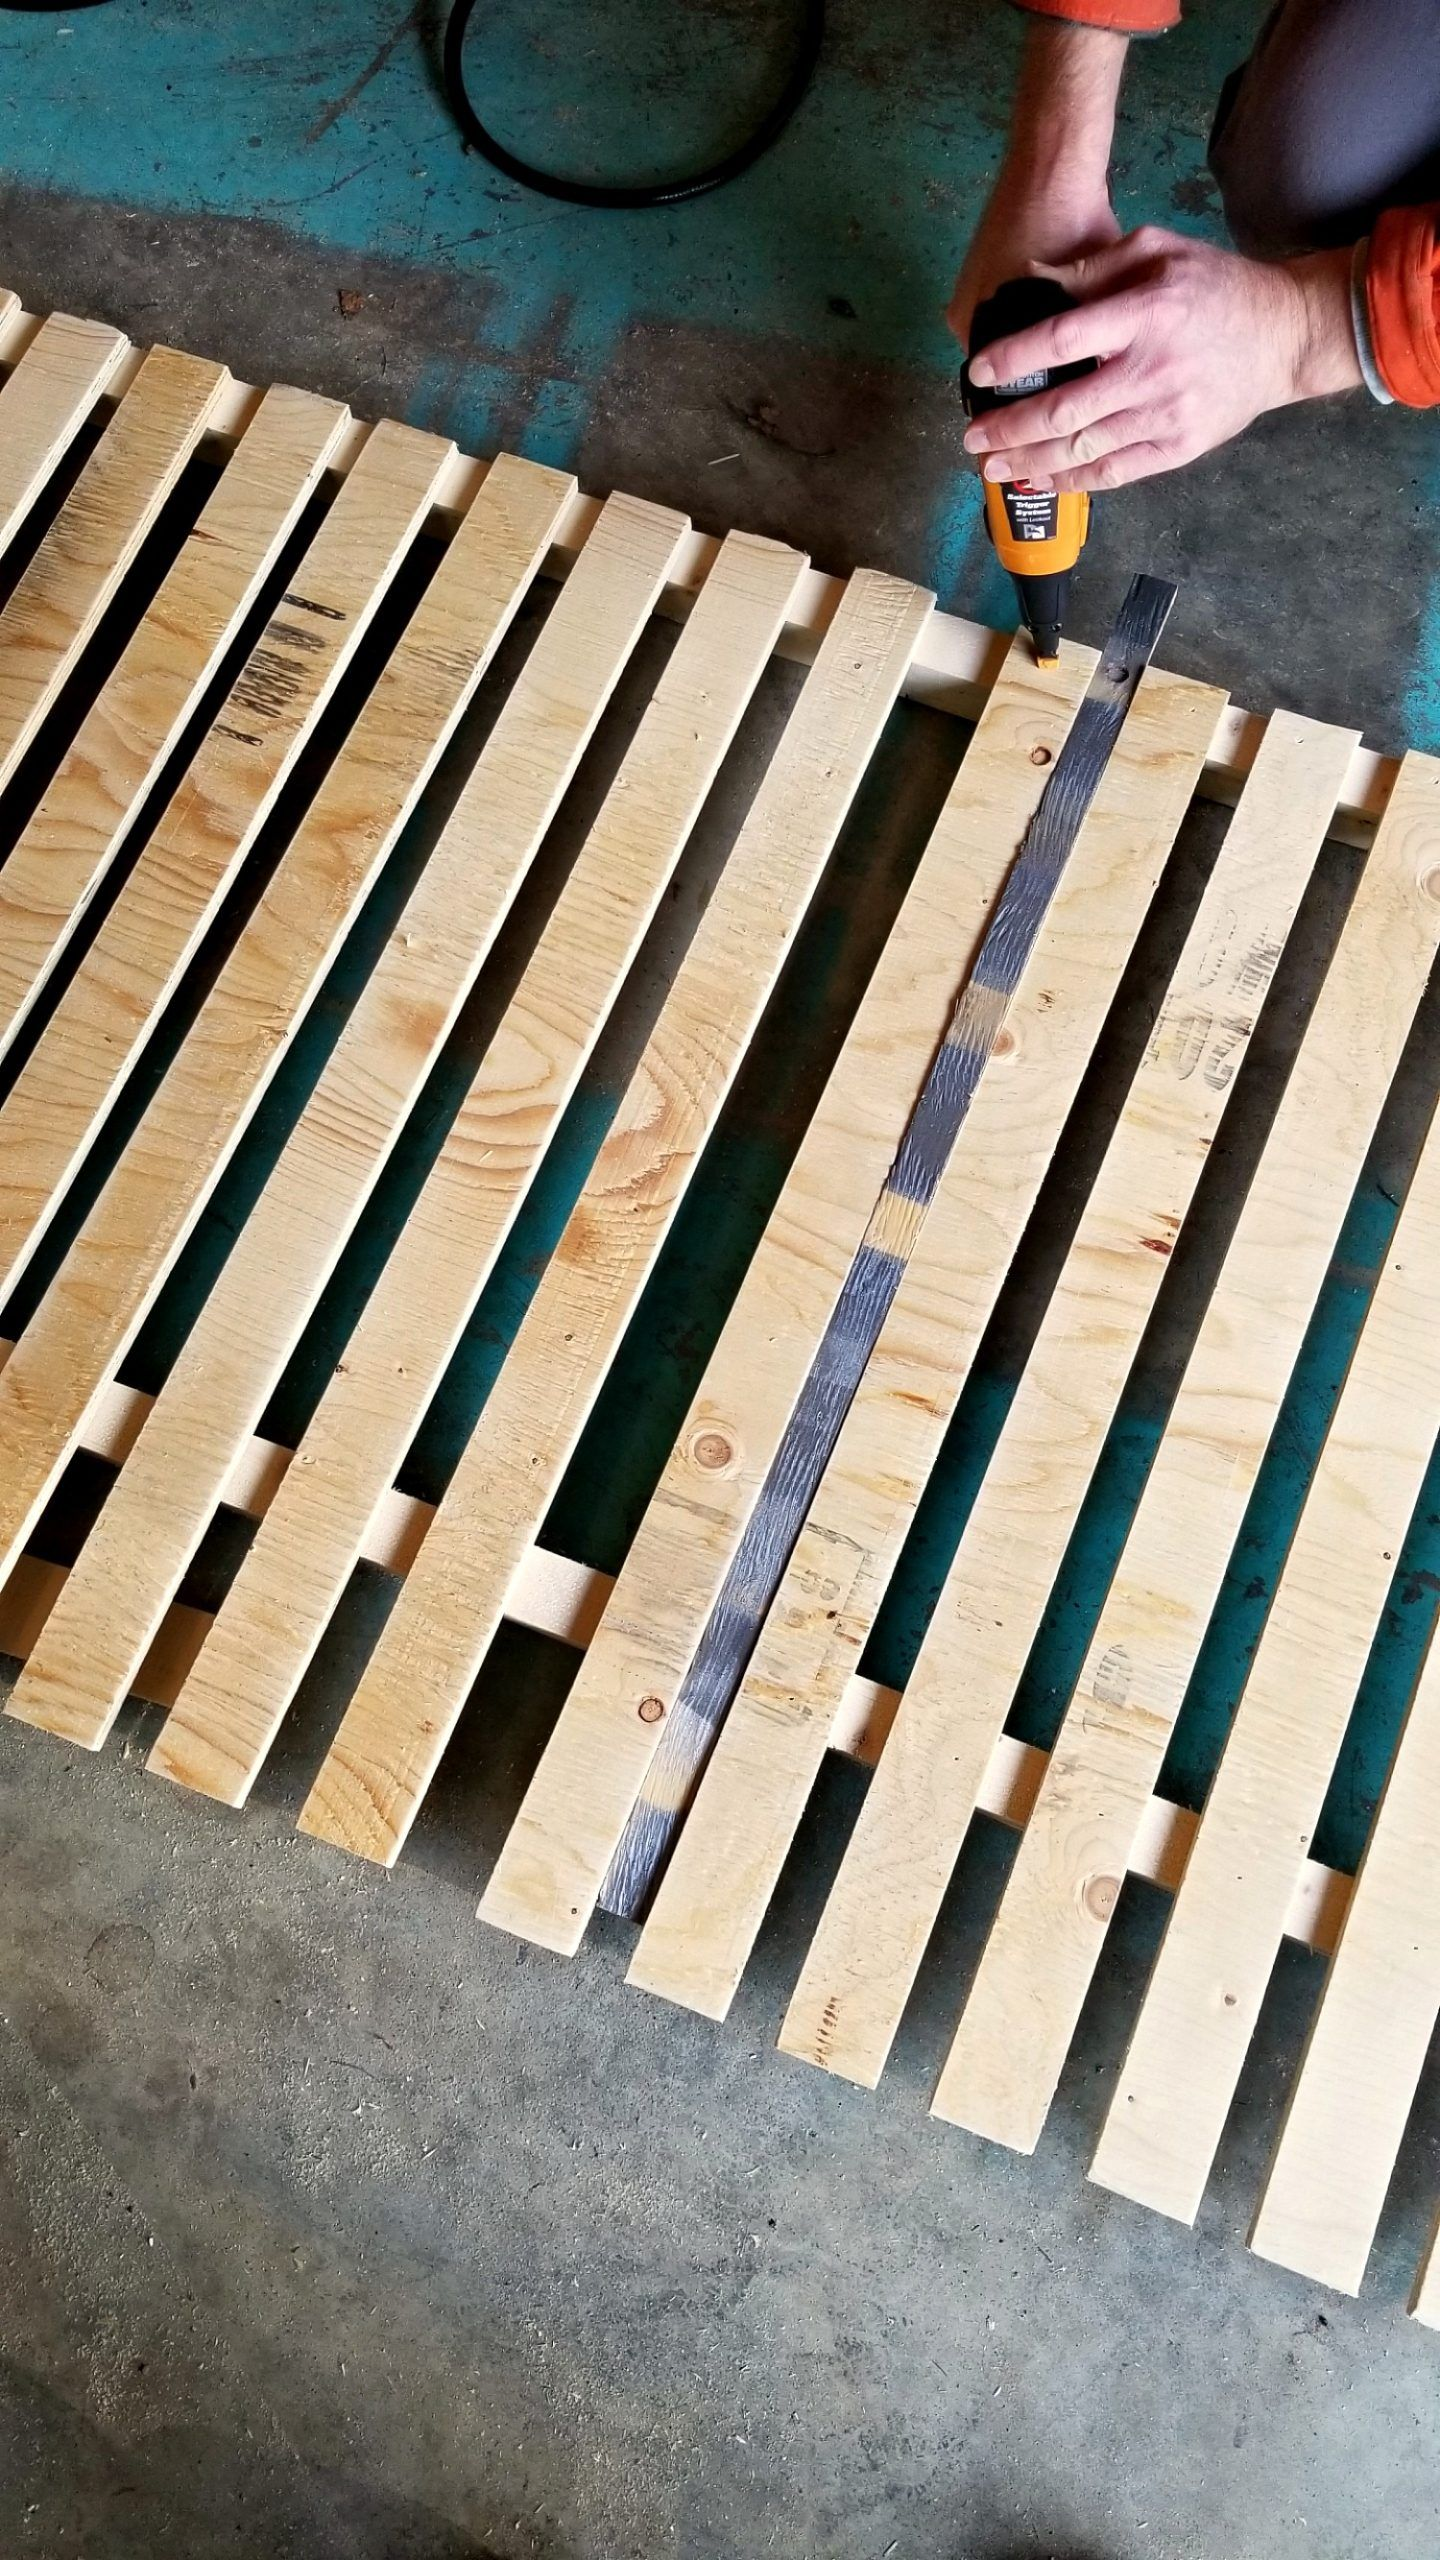 Modern Diy Vertical Slatted Deck Skirting Sponsored By The Home Depot Canada Dans Le Lakehouse In 2020 Deck Skirting Diy Deck Cheap Deck Ideas